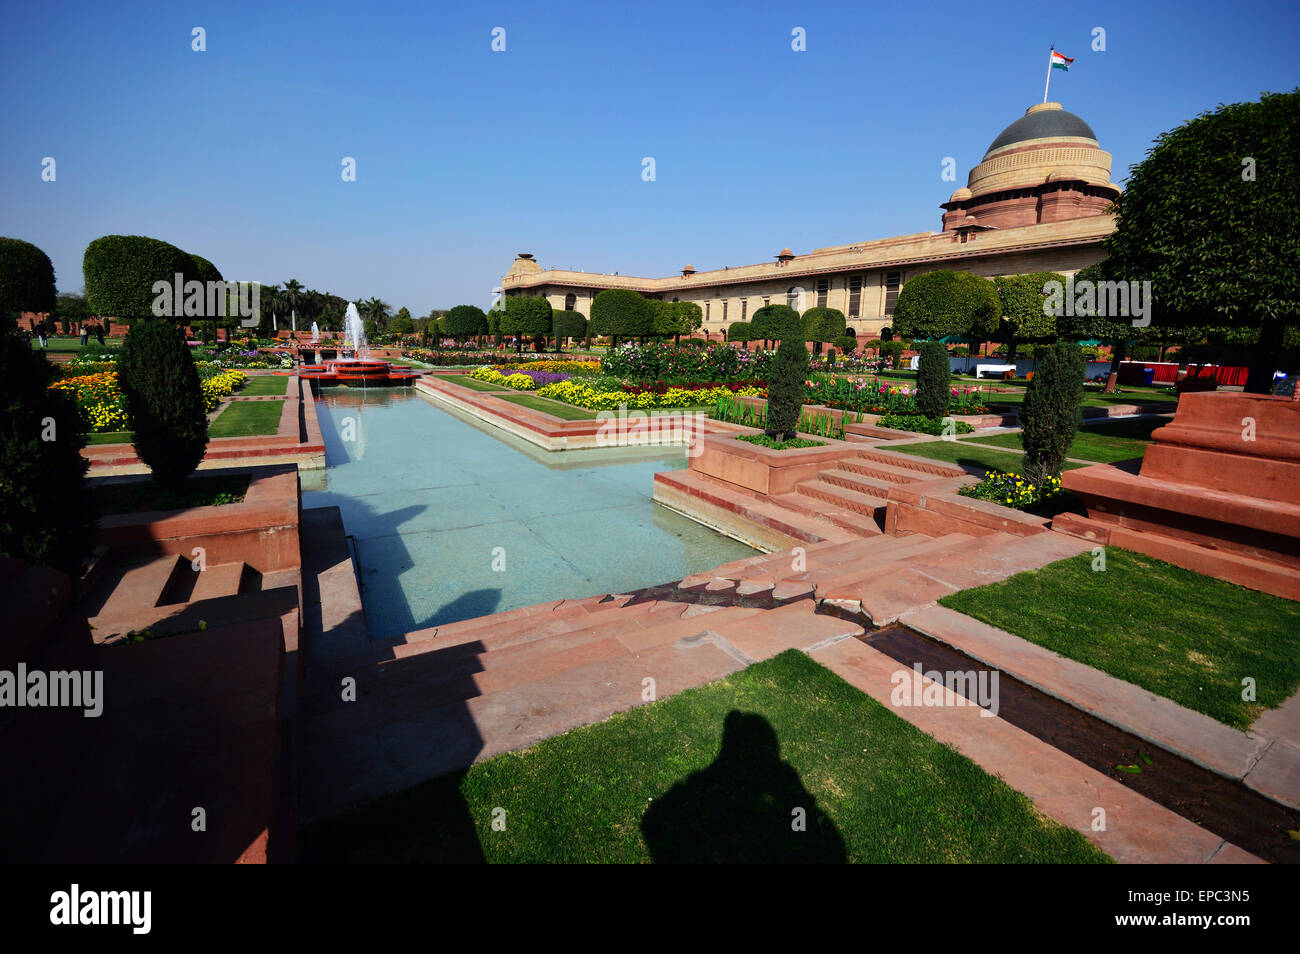 Mughal Garden is a part of Indian President Residence called Rasjtrapati Bhawan situated at Raisina Hill in Delhi. - Stock Image